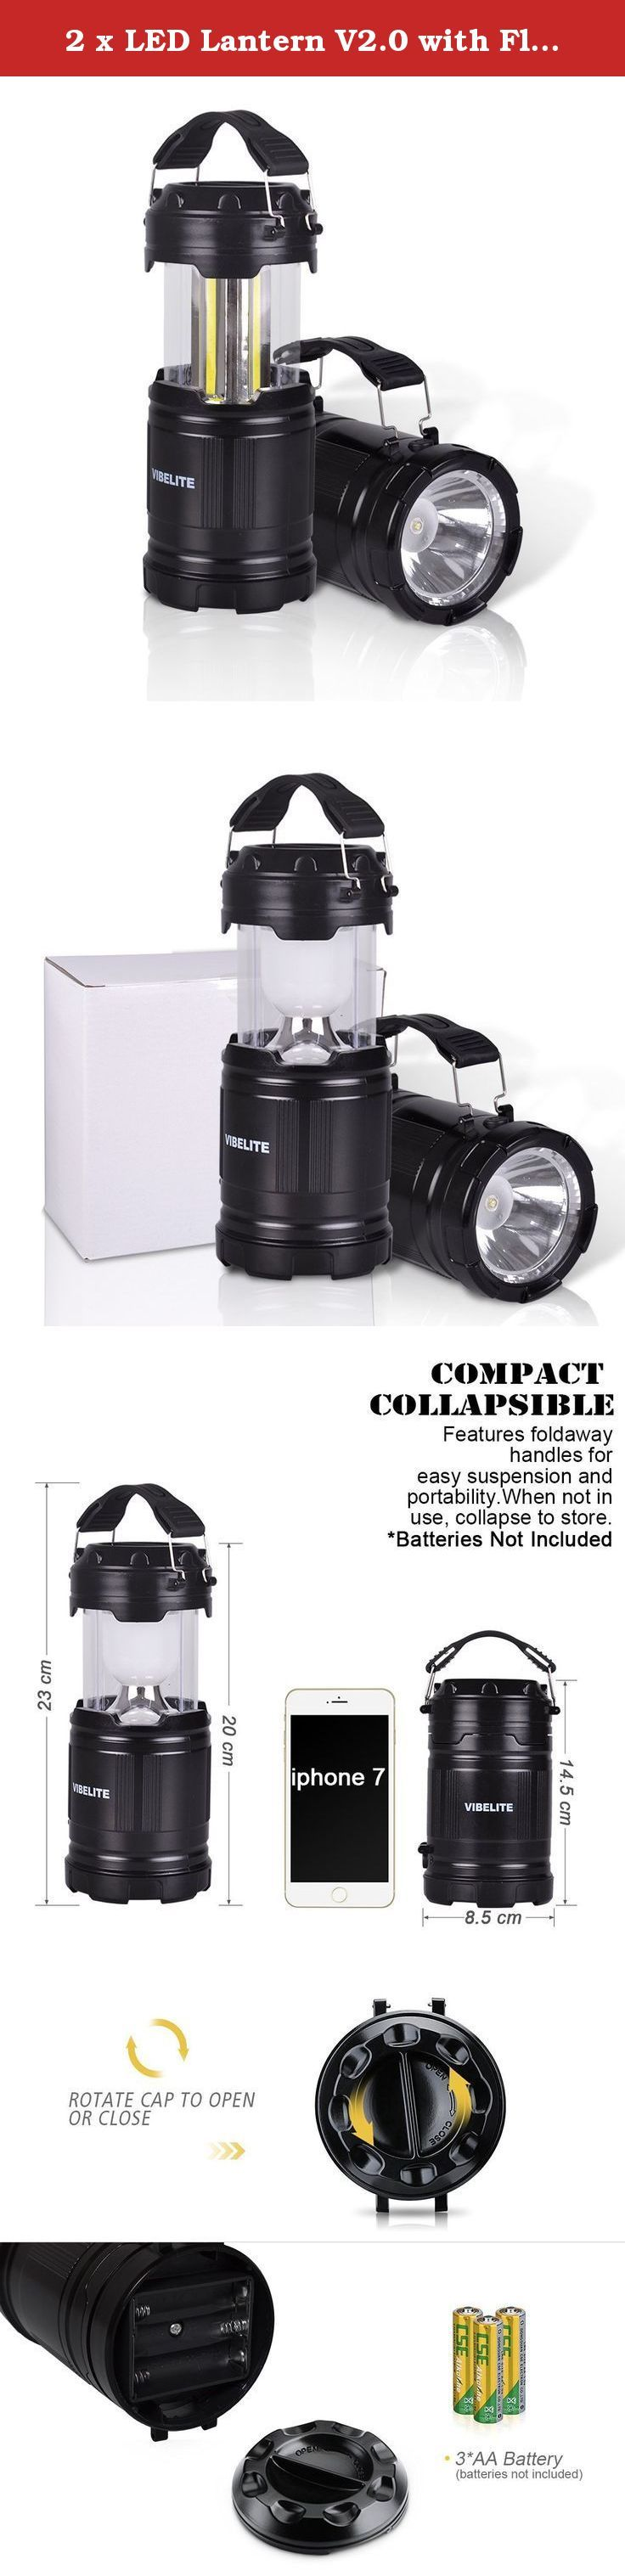 2 x LED Lantern V2.0 with Flashlight - 2016 COB Technology emits 300 LUMENS! - Collapsible Tough Lamp - Great Light for Camping, Car, Shop, Attic, Garage - 5 YEAR WARRANTY. Our Camping Lantern features the LATEST LED TECHNOLOGY in the form of three 48mm COB strips. Gone are the 30 small LEDs of our previous lantern which gave out far less light per watt consumed. For this latest version we've added a FLASHLIGHT in the base, giving unrivaled versatility coupled with our superior COB...